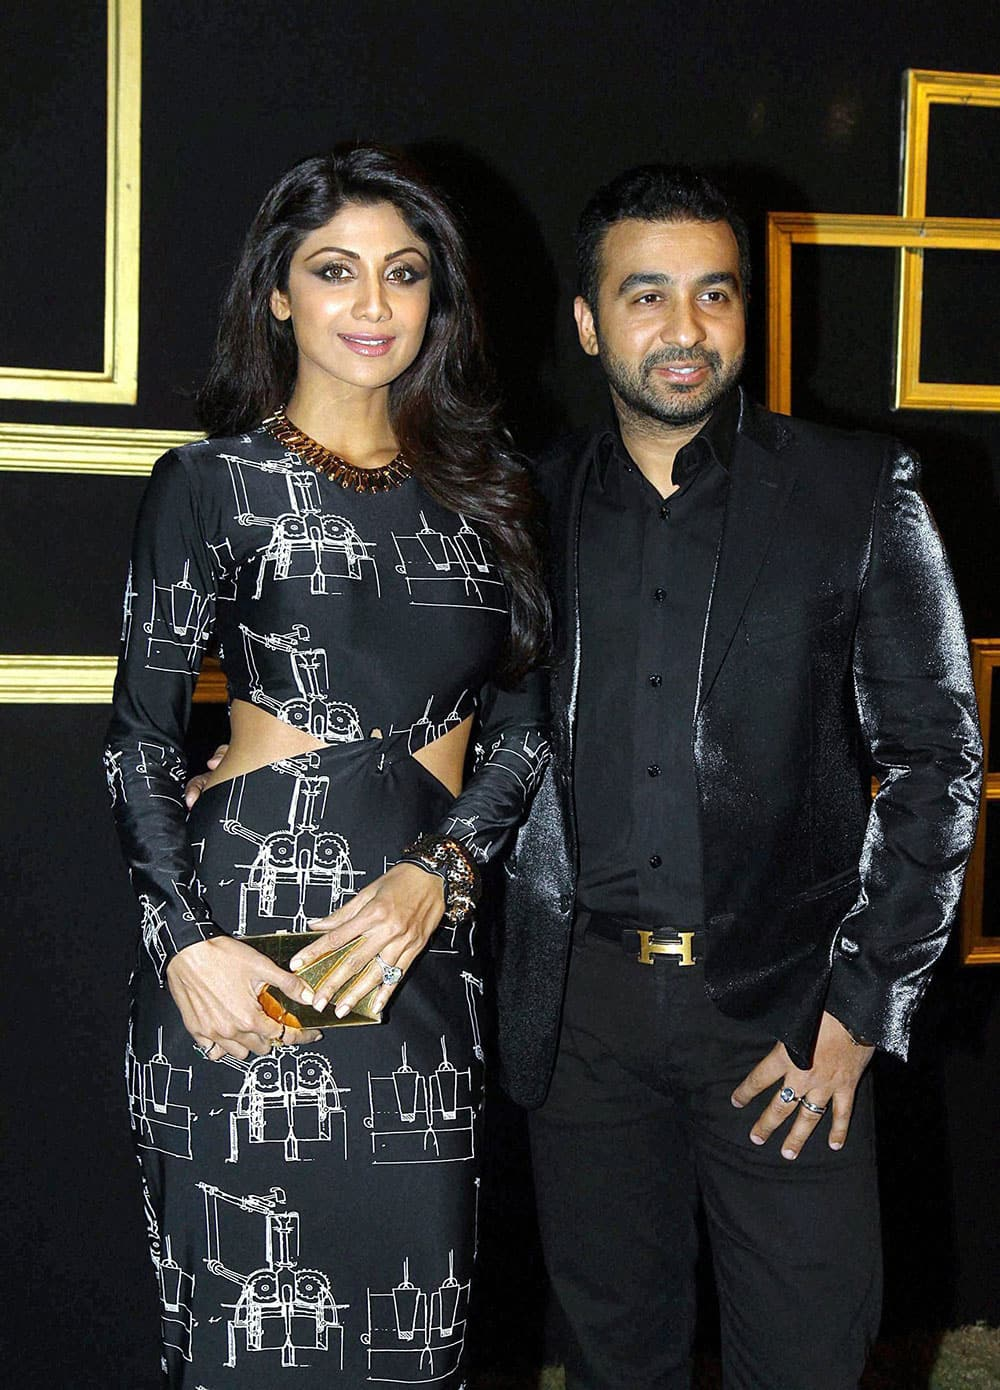 Bollywood actress Shilpa Shetty poses with her husband Raj Kundra as they arrive to attend a party hosted by actress Deepika Padukone in Mumbai.